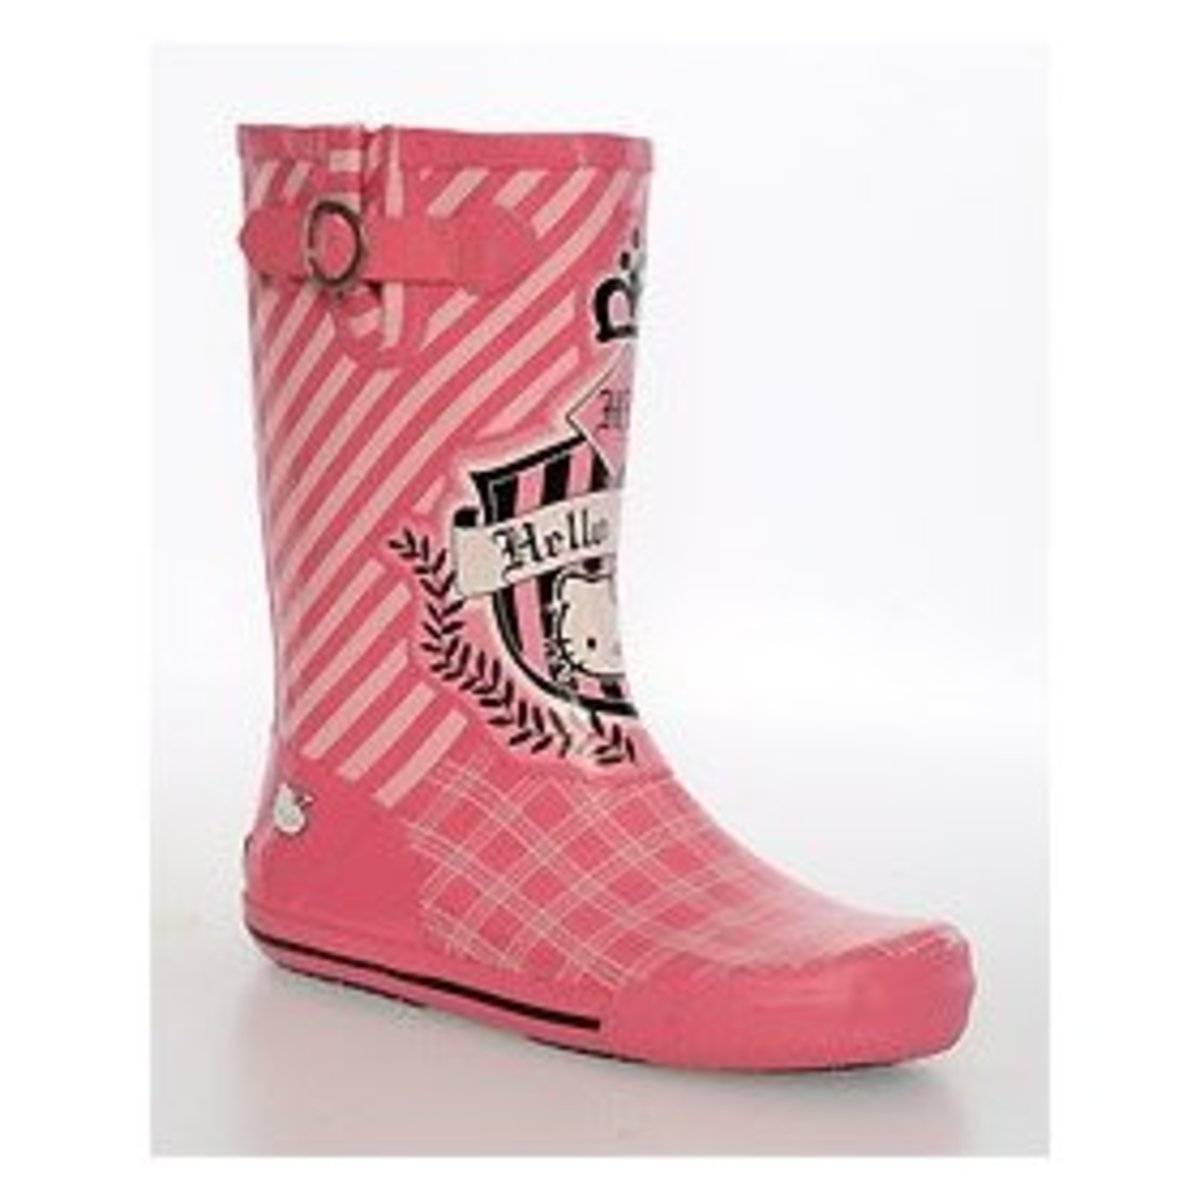 Hello Kitty Chooka rain boots